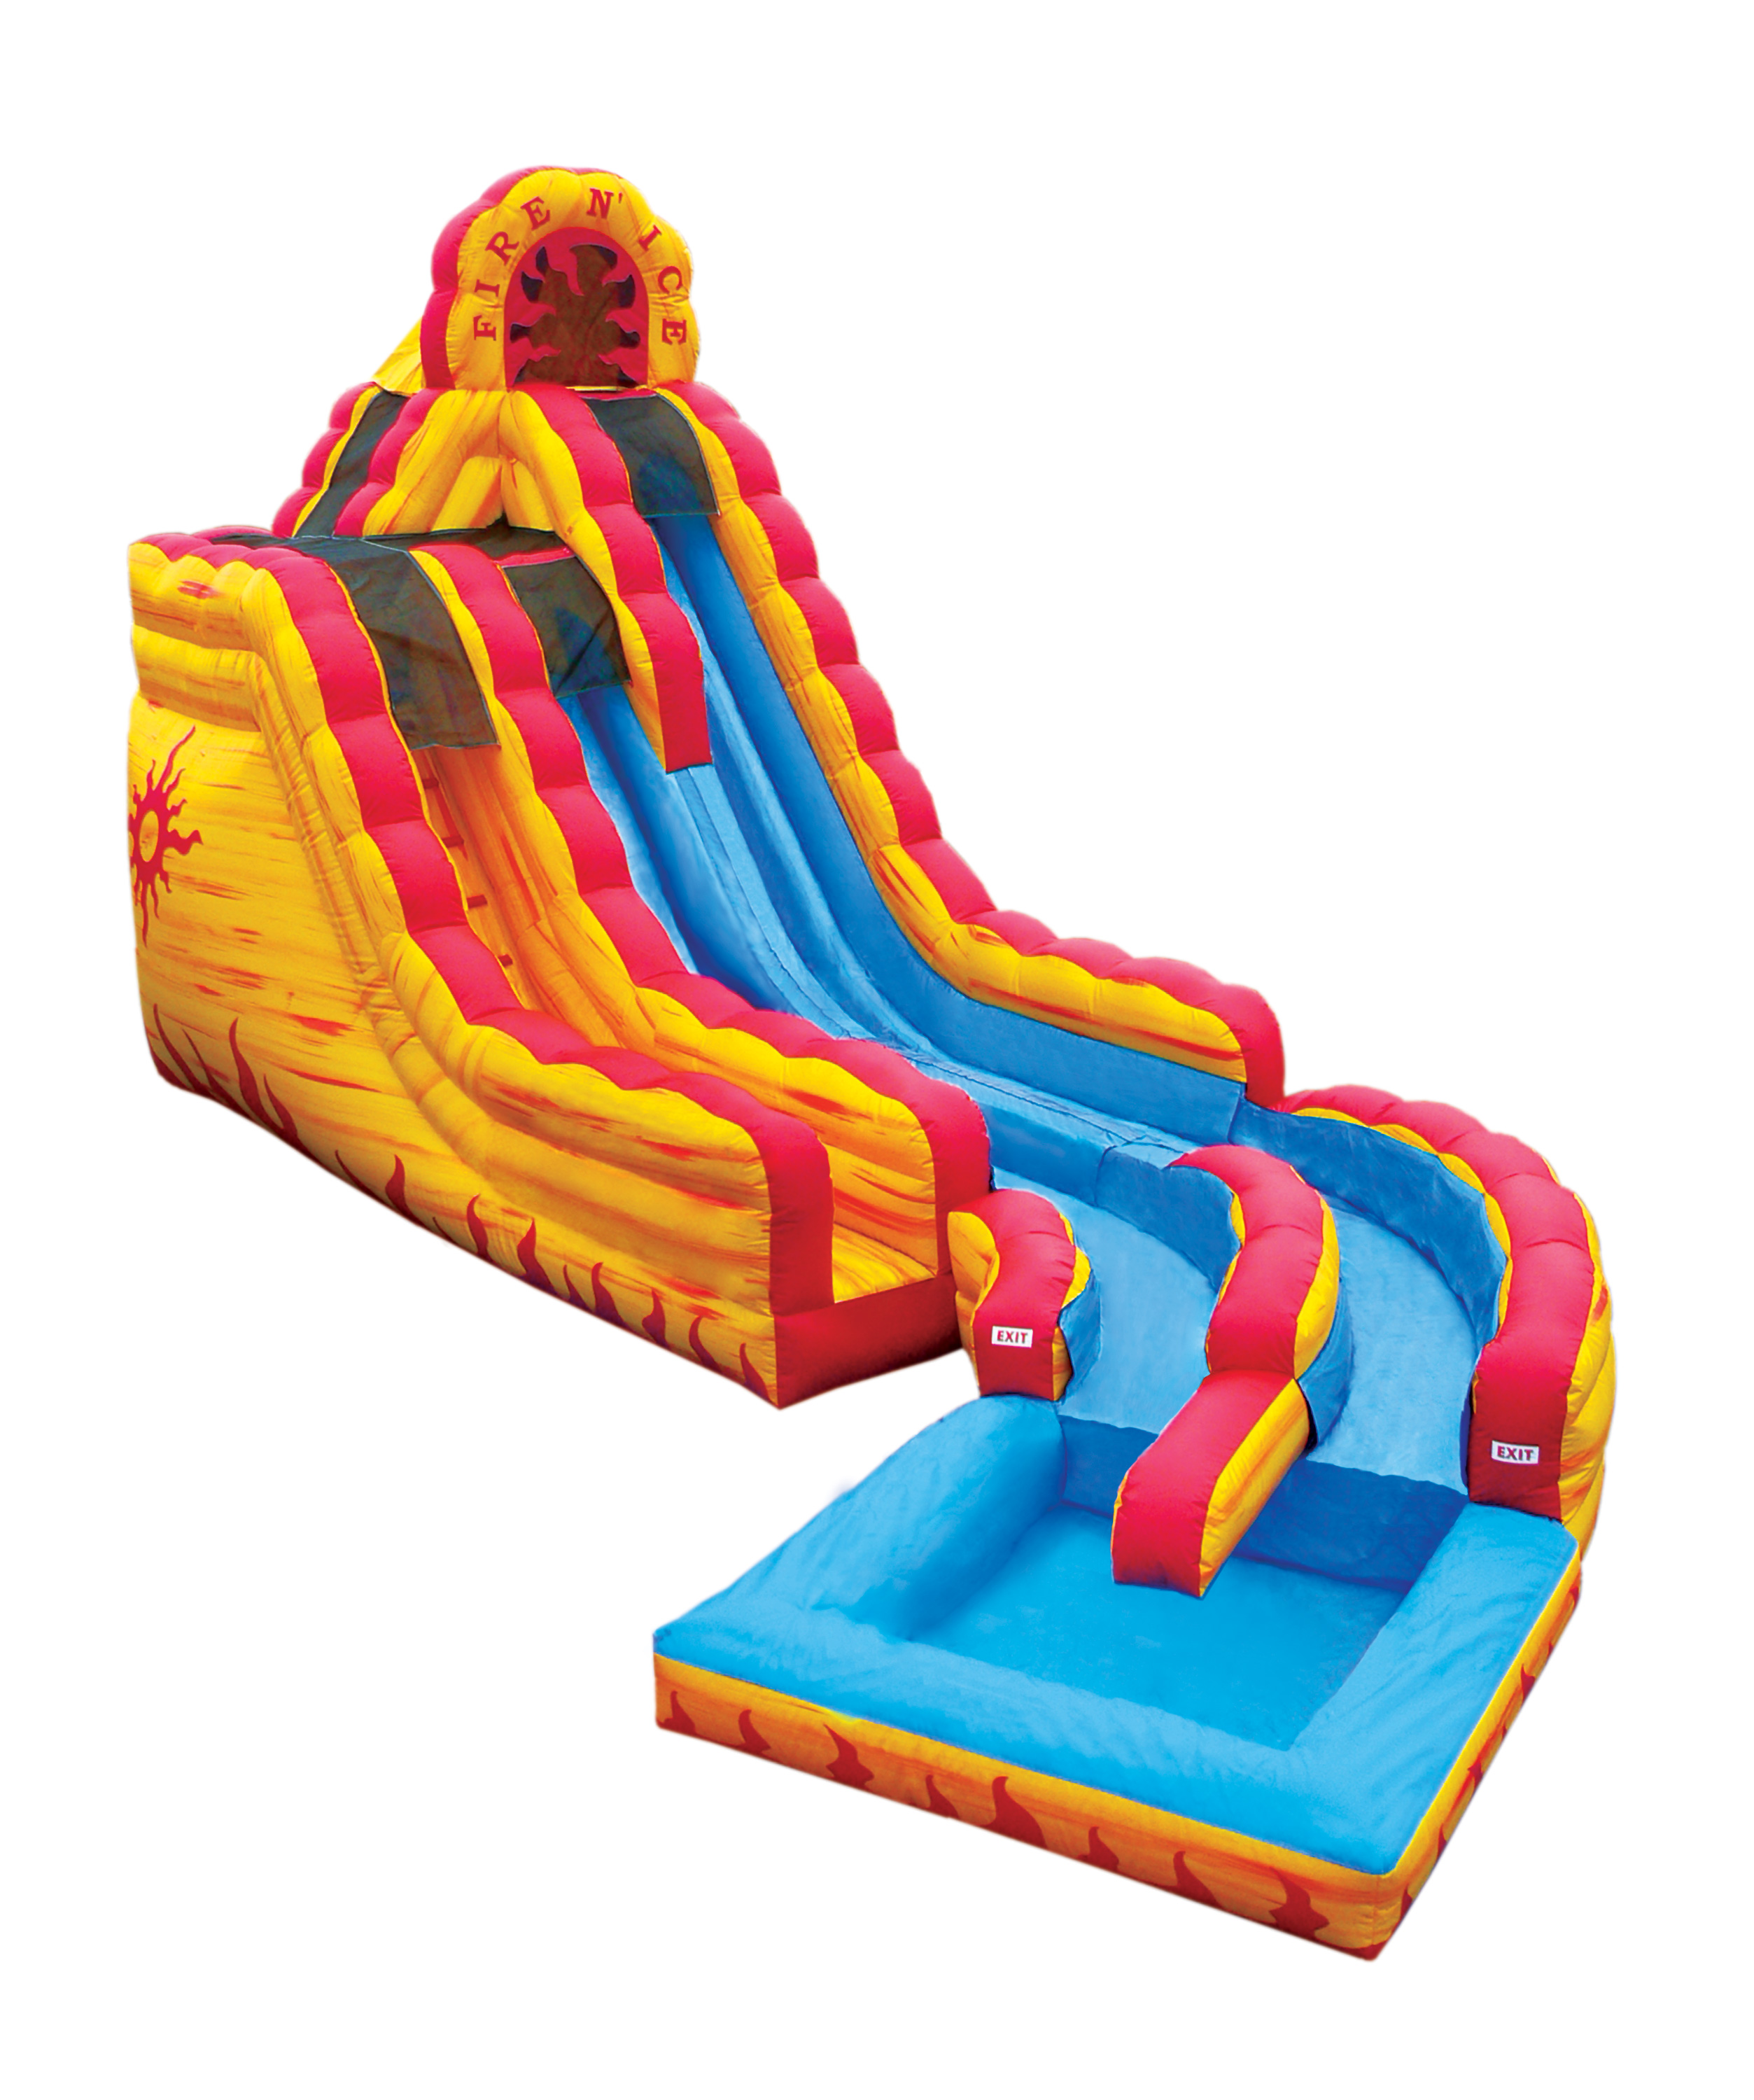 Inflatable water slide rentals in salt lake city utah all in fun clip art